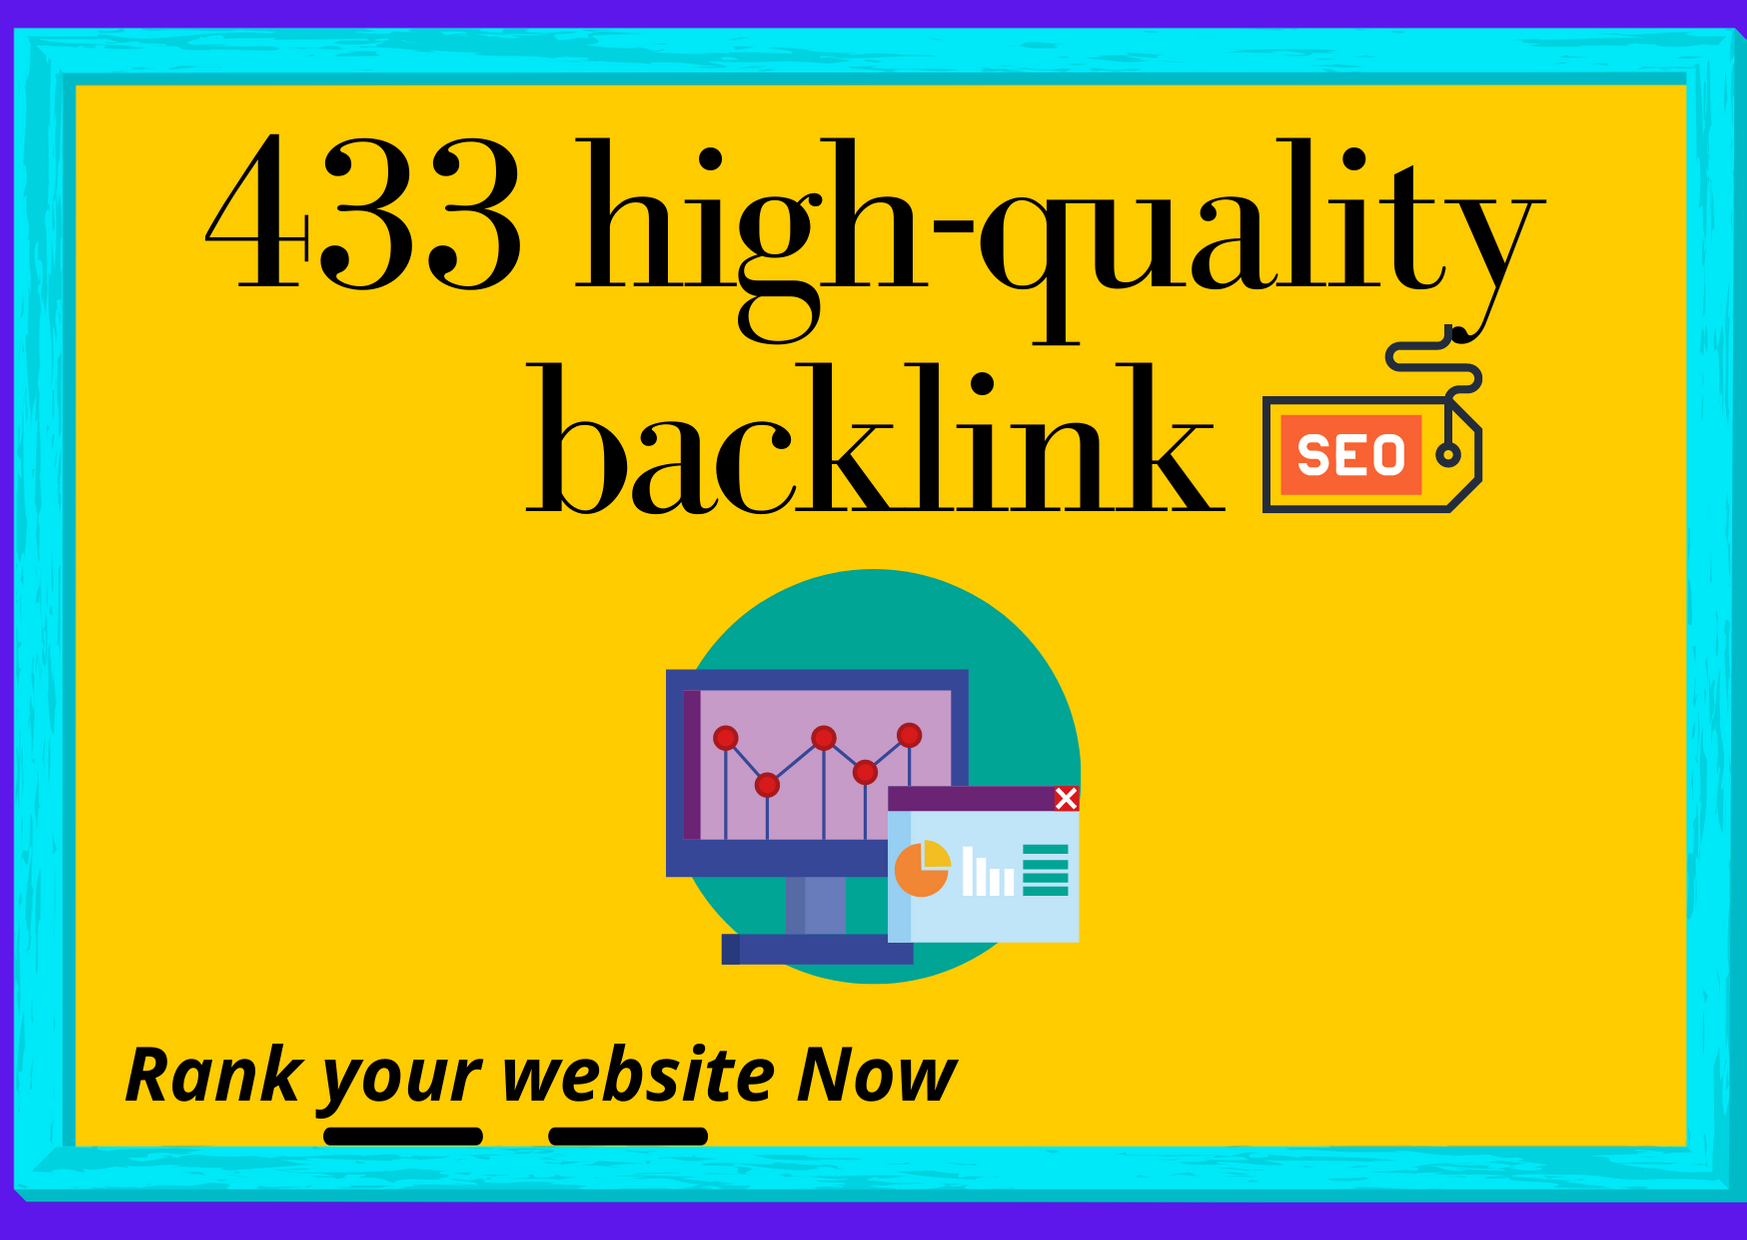 I will do 433+ High-quality backlink for rank your website